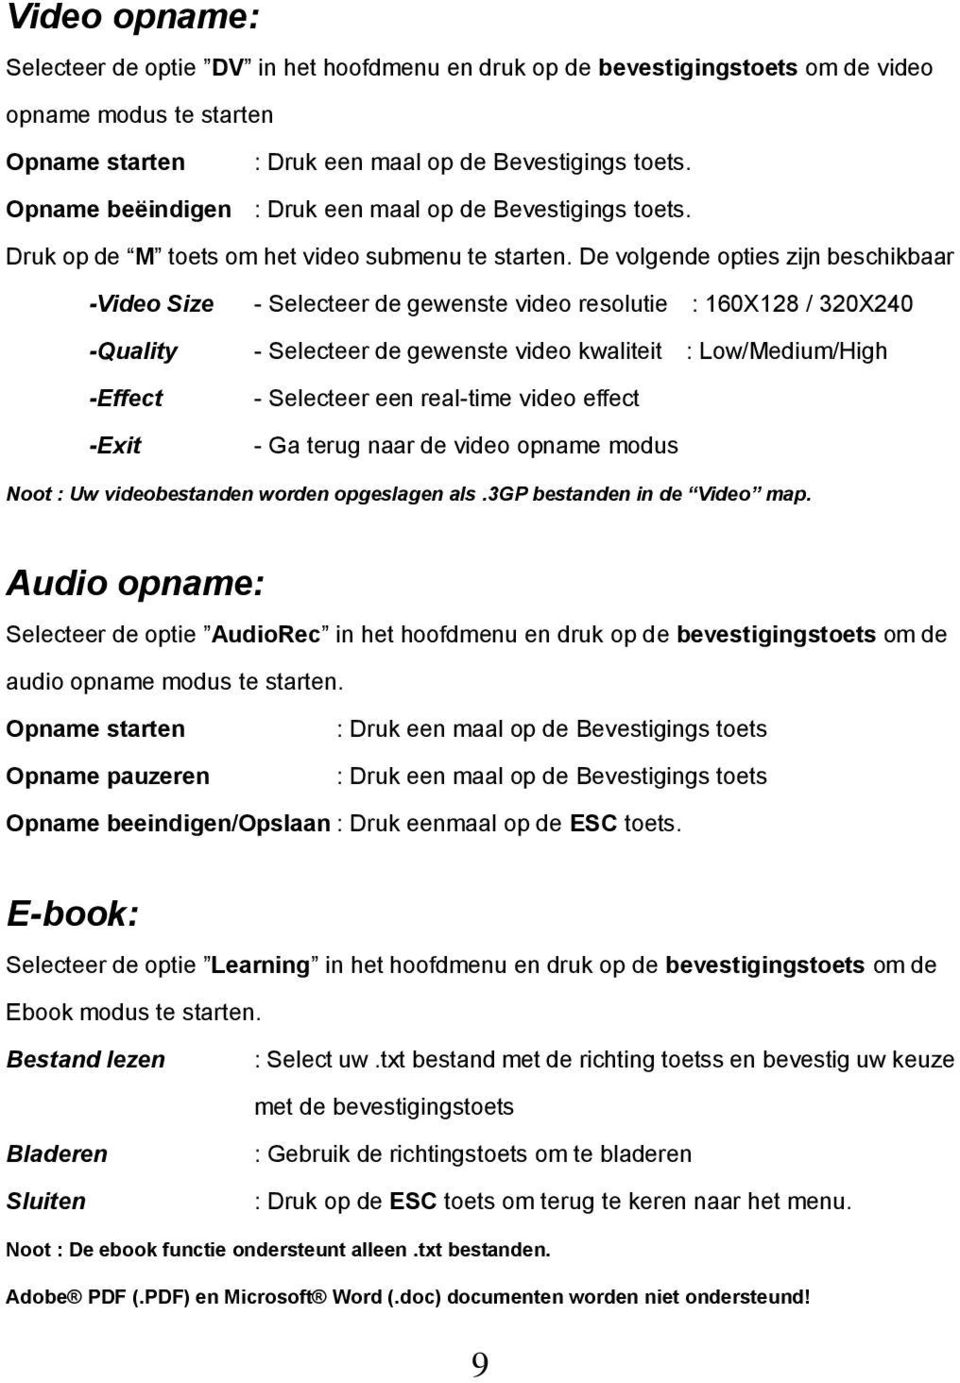 De volgende opties zijn beschikbaar -Video Size - Selecteer de gewenste video resolutie : 160X128 / 320X240 -Quality - Selecteer de gewenste video kwaliteit : Low/Medium/High -Effect - Selecteer een